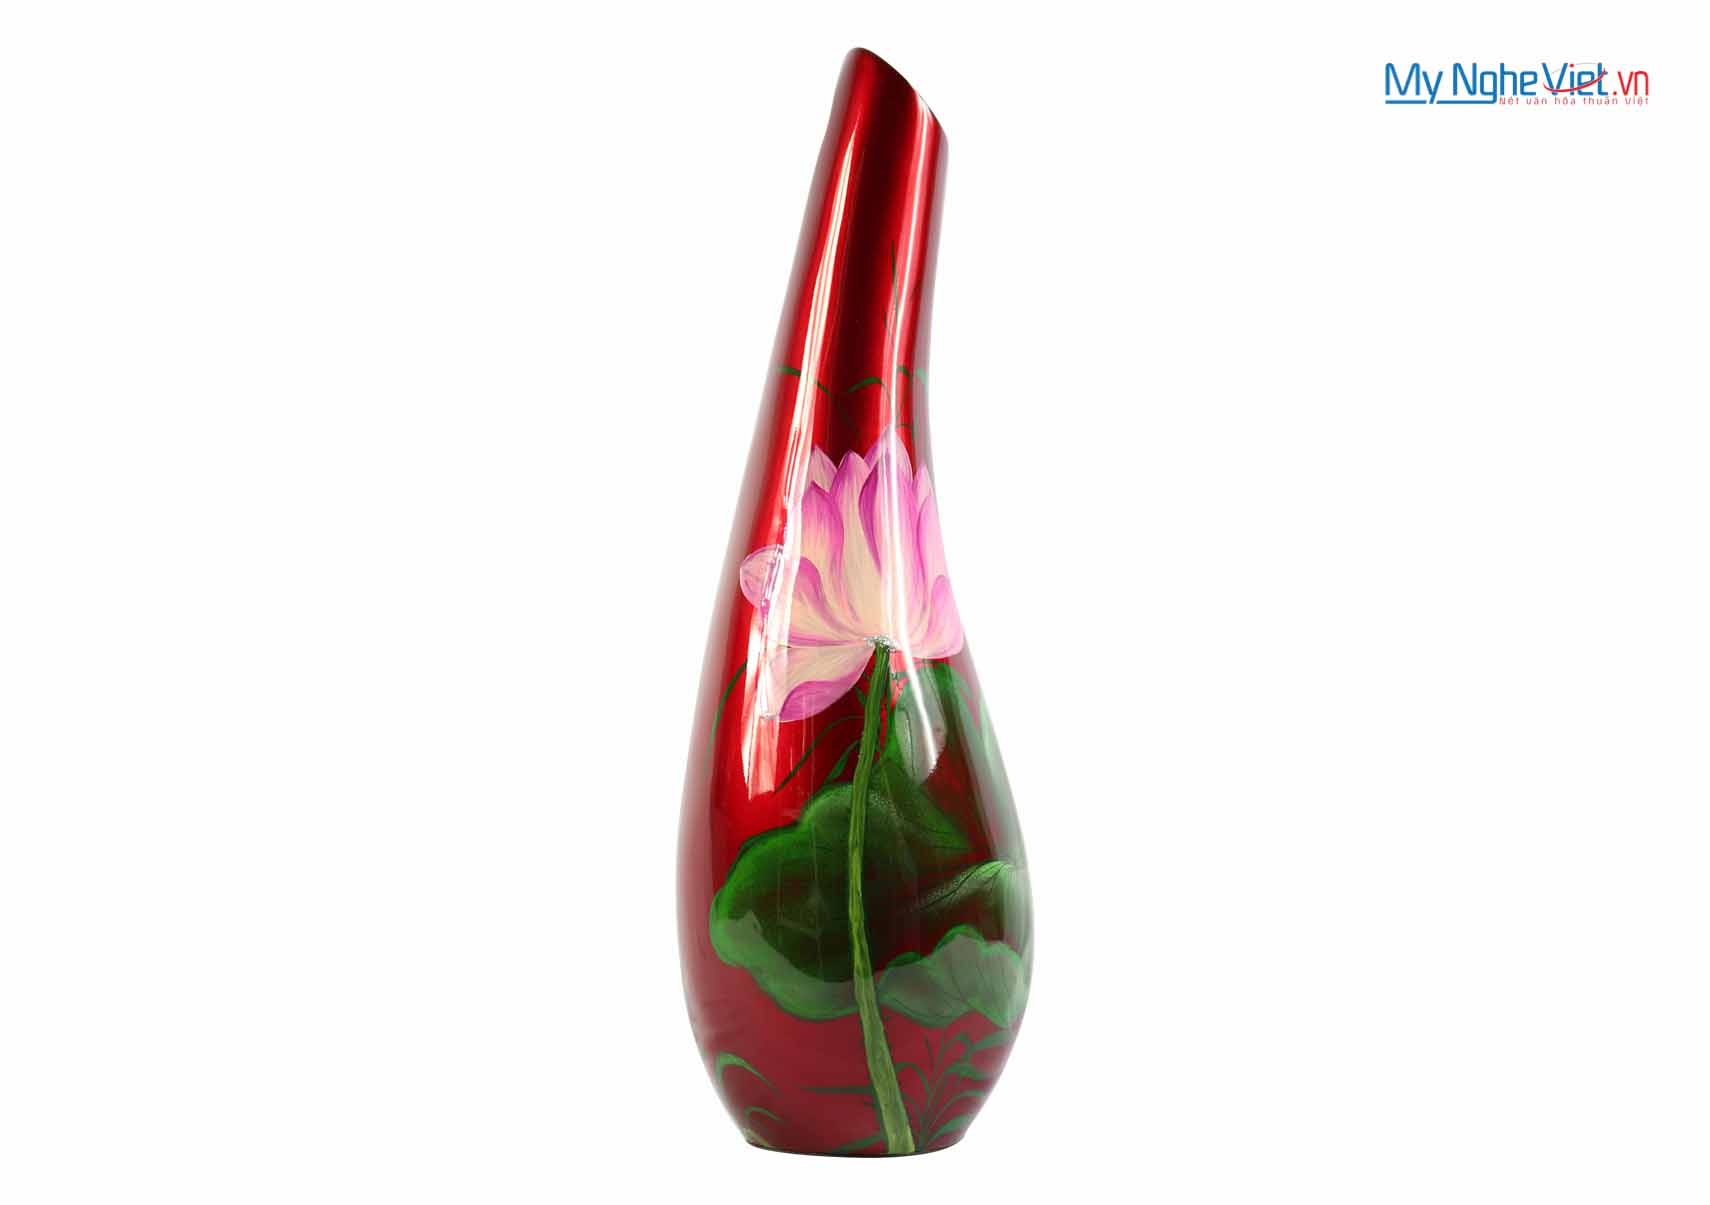 Lacquer vase  MNV-LHSM06-4